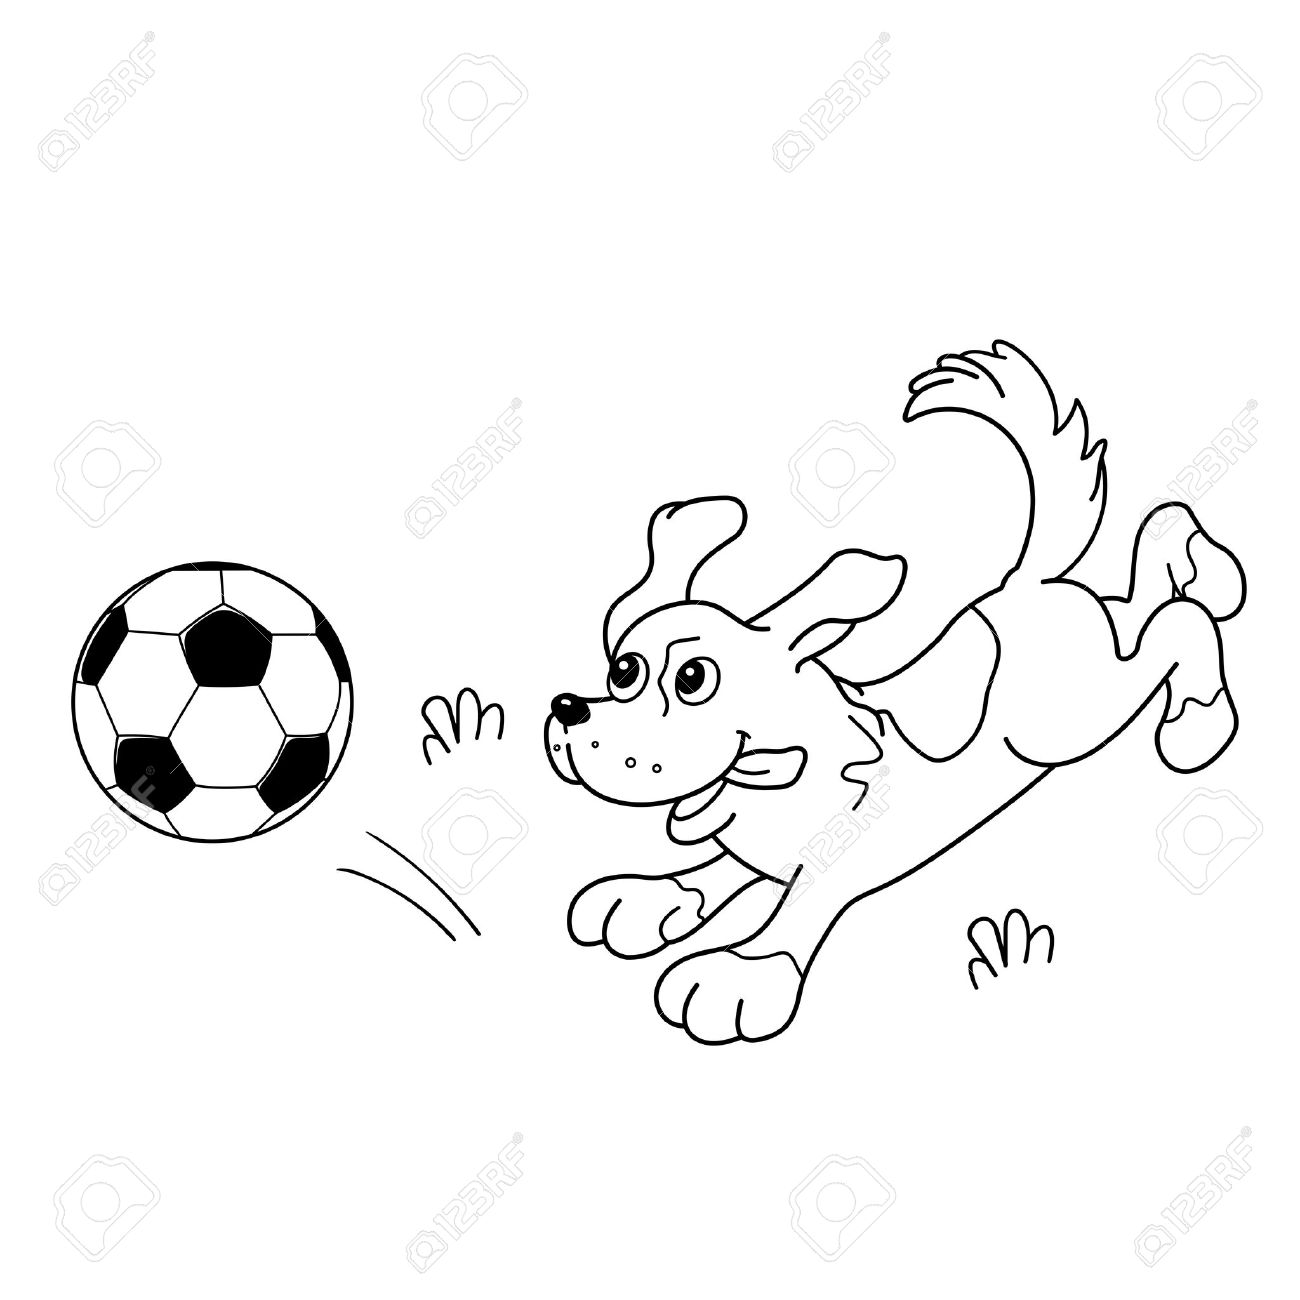 Coloring Page Outline Of Cartoon Dog With Soccer Ball. Coloring ...